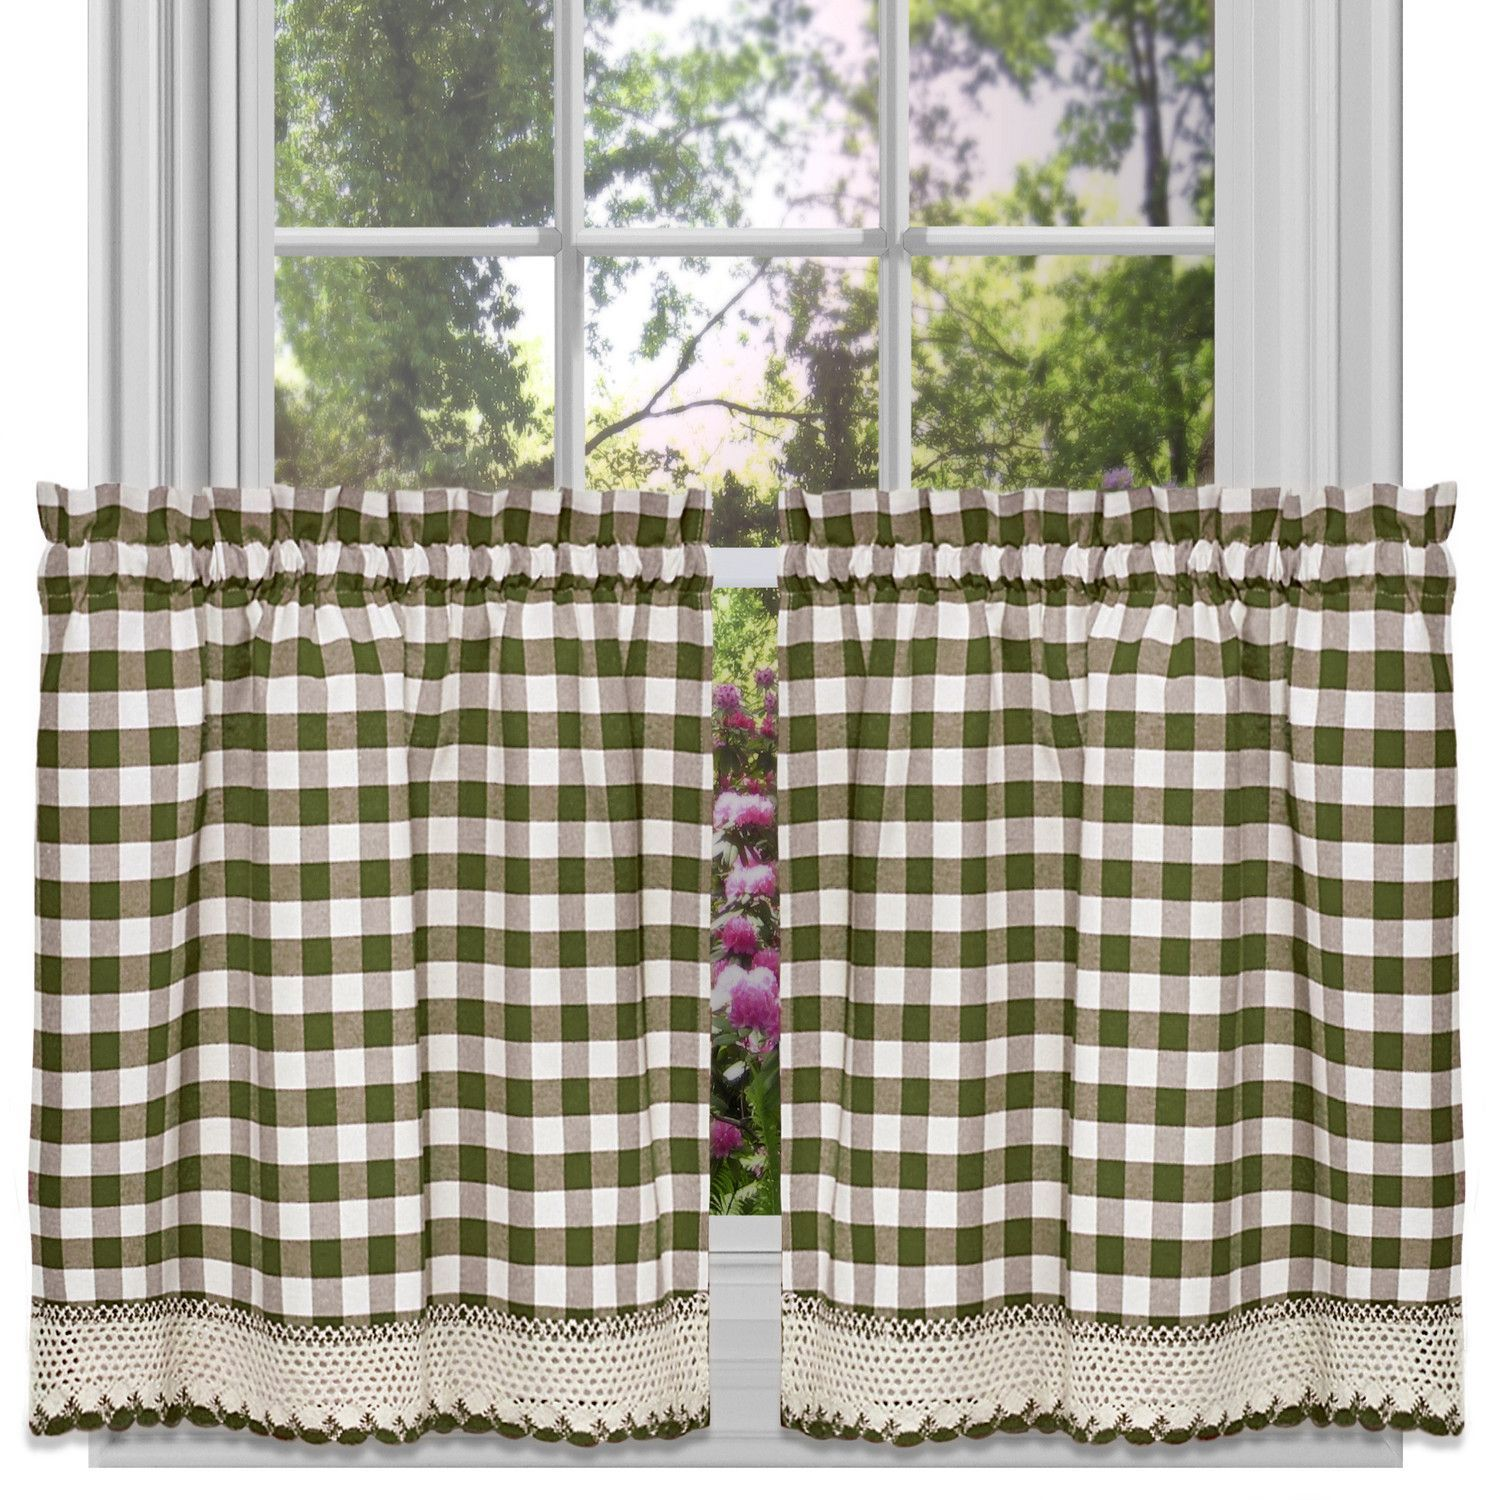 Steinke Scrolling 42 Window Valance Sweet Home Collection Tier Curtains Cafe Curtains